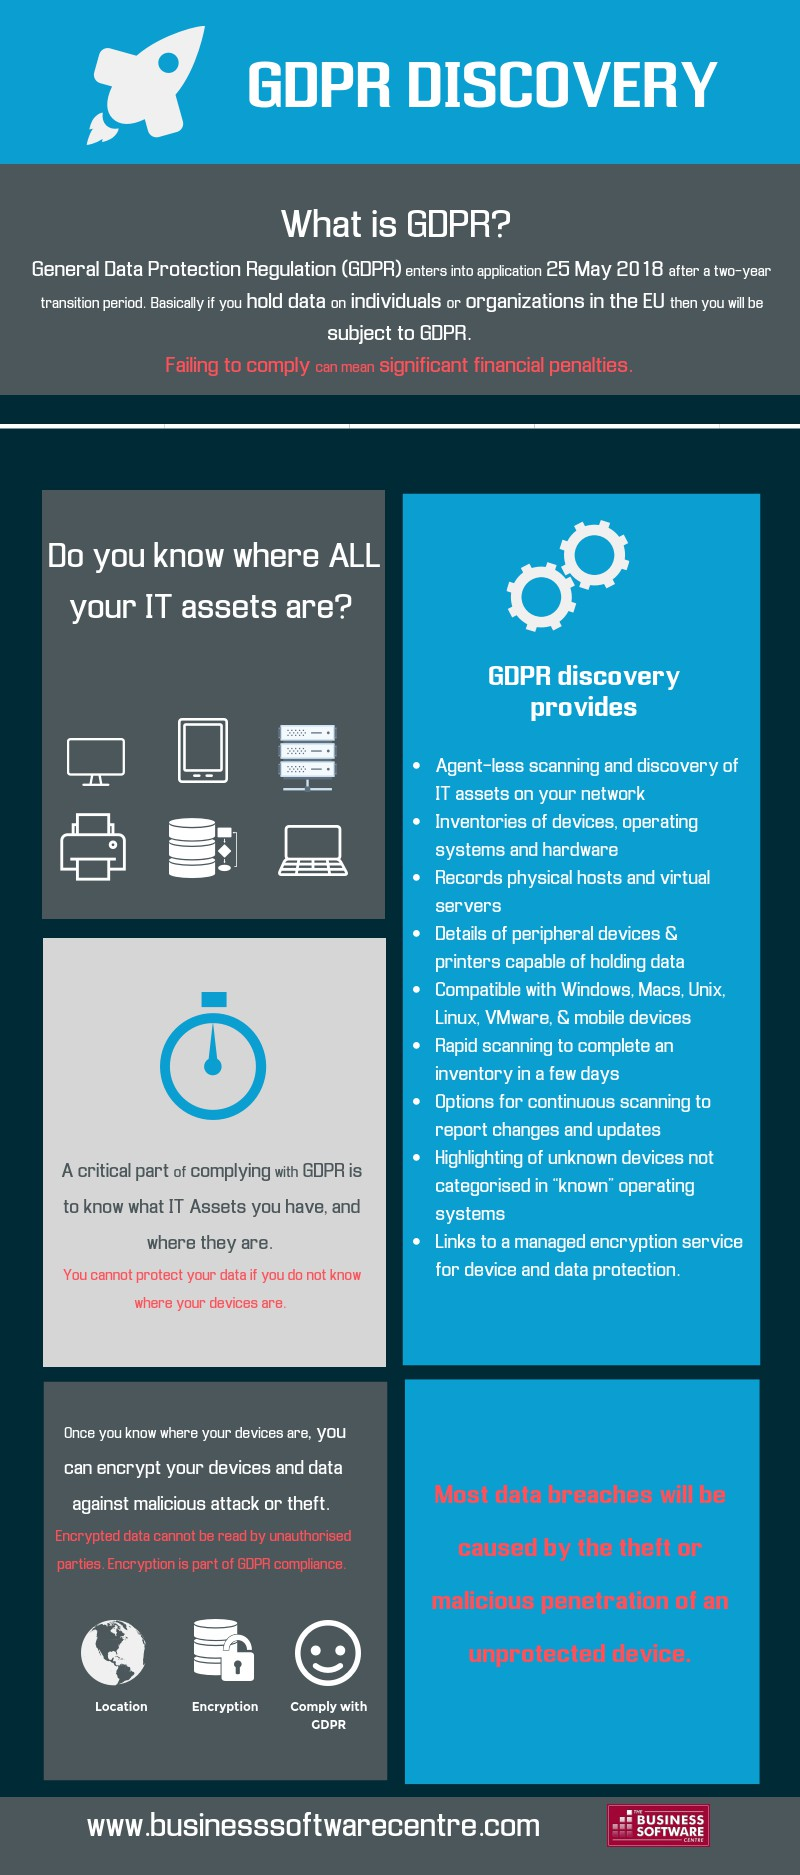 GDPR Discovery